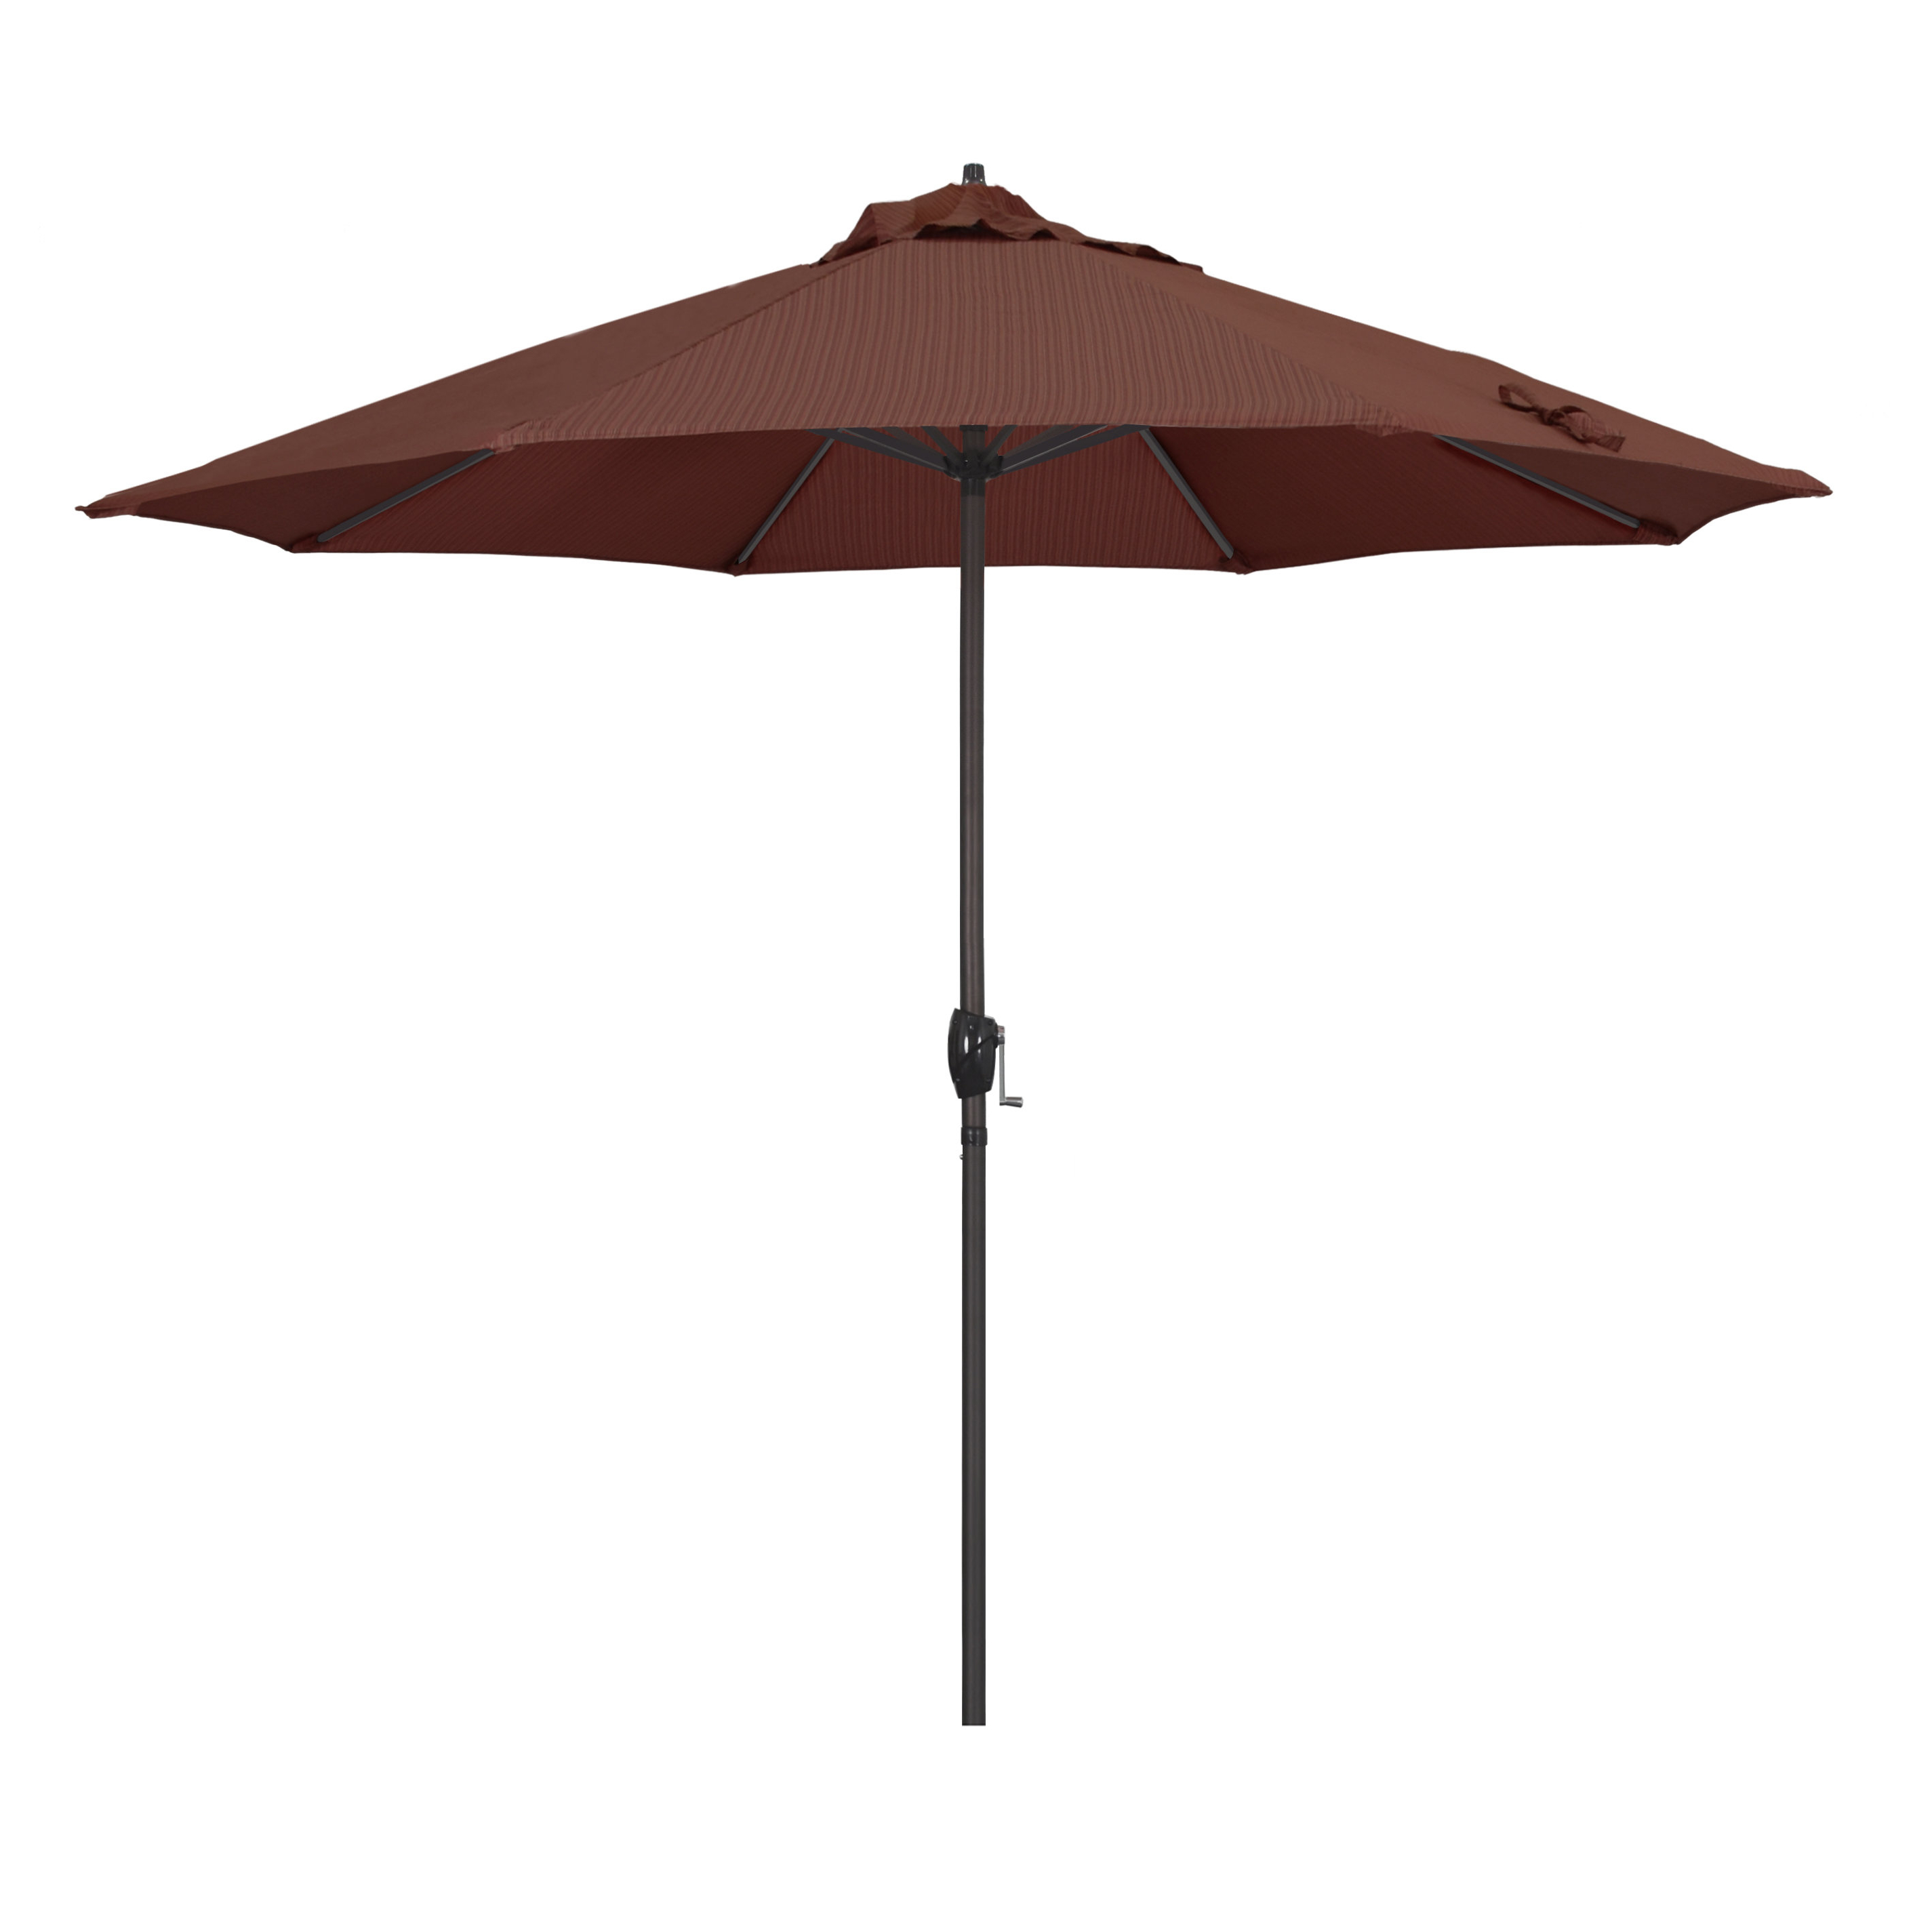 Popular Lambeth Market Umbrellas Regarding Cardine 9' Market Umbrella (View 4 of 20)